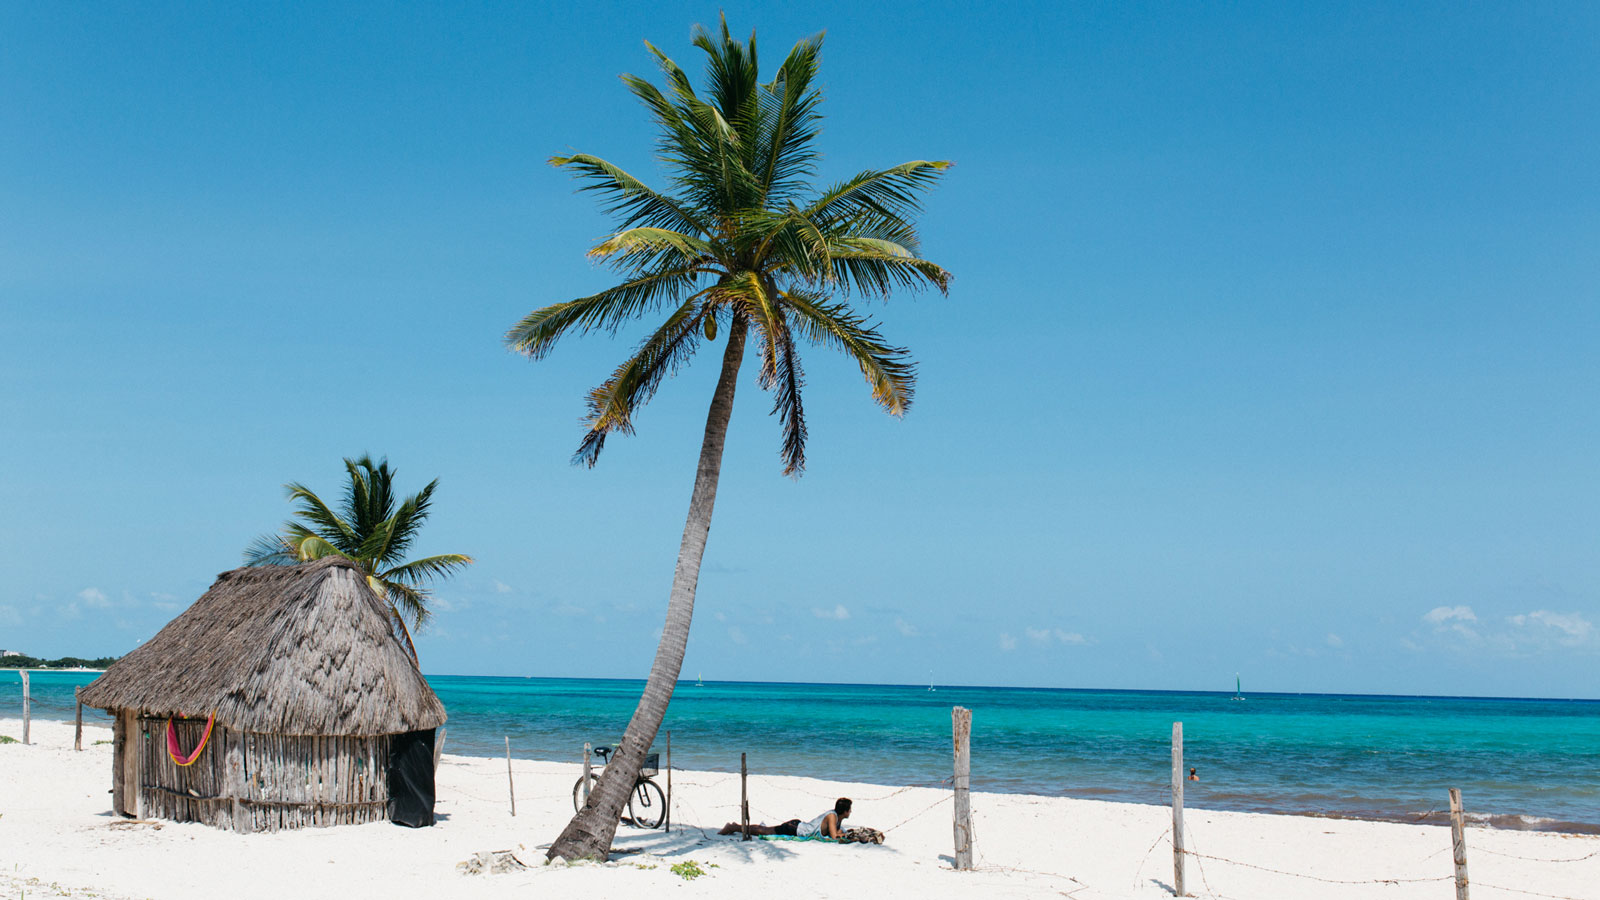 The_Ink_Collective_Web_Design_Travel_Photography_Hammocks_and_Ruins_21.jpg